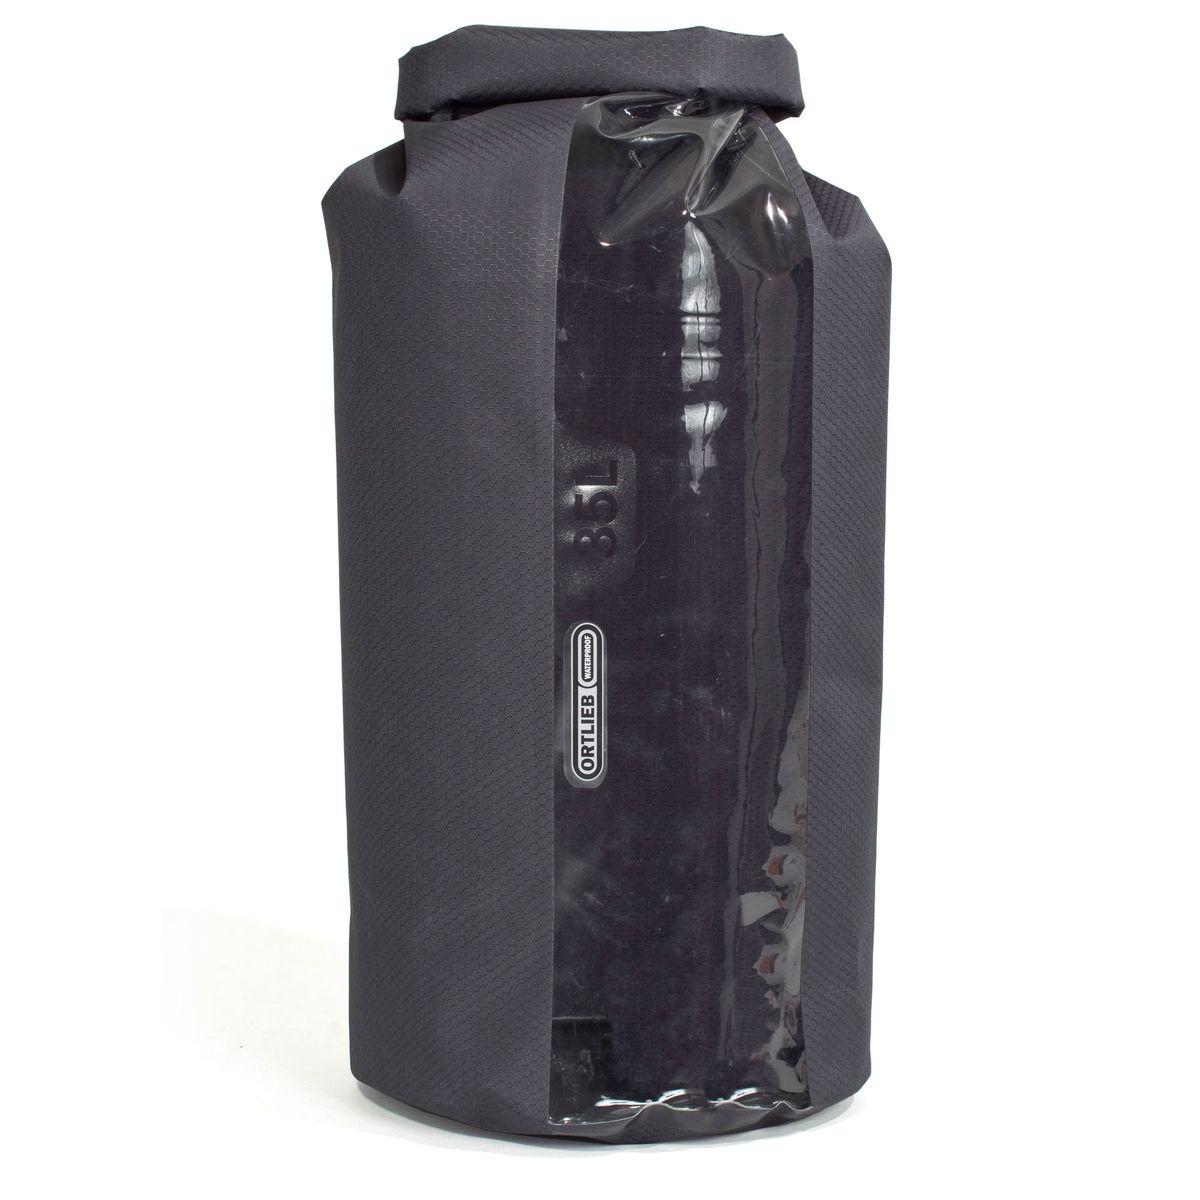 PS21R dry bag with window